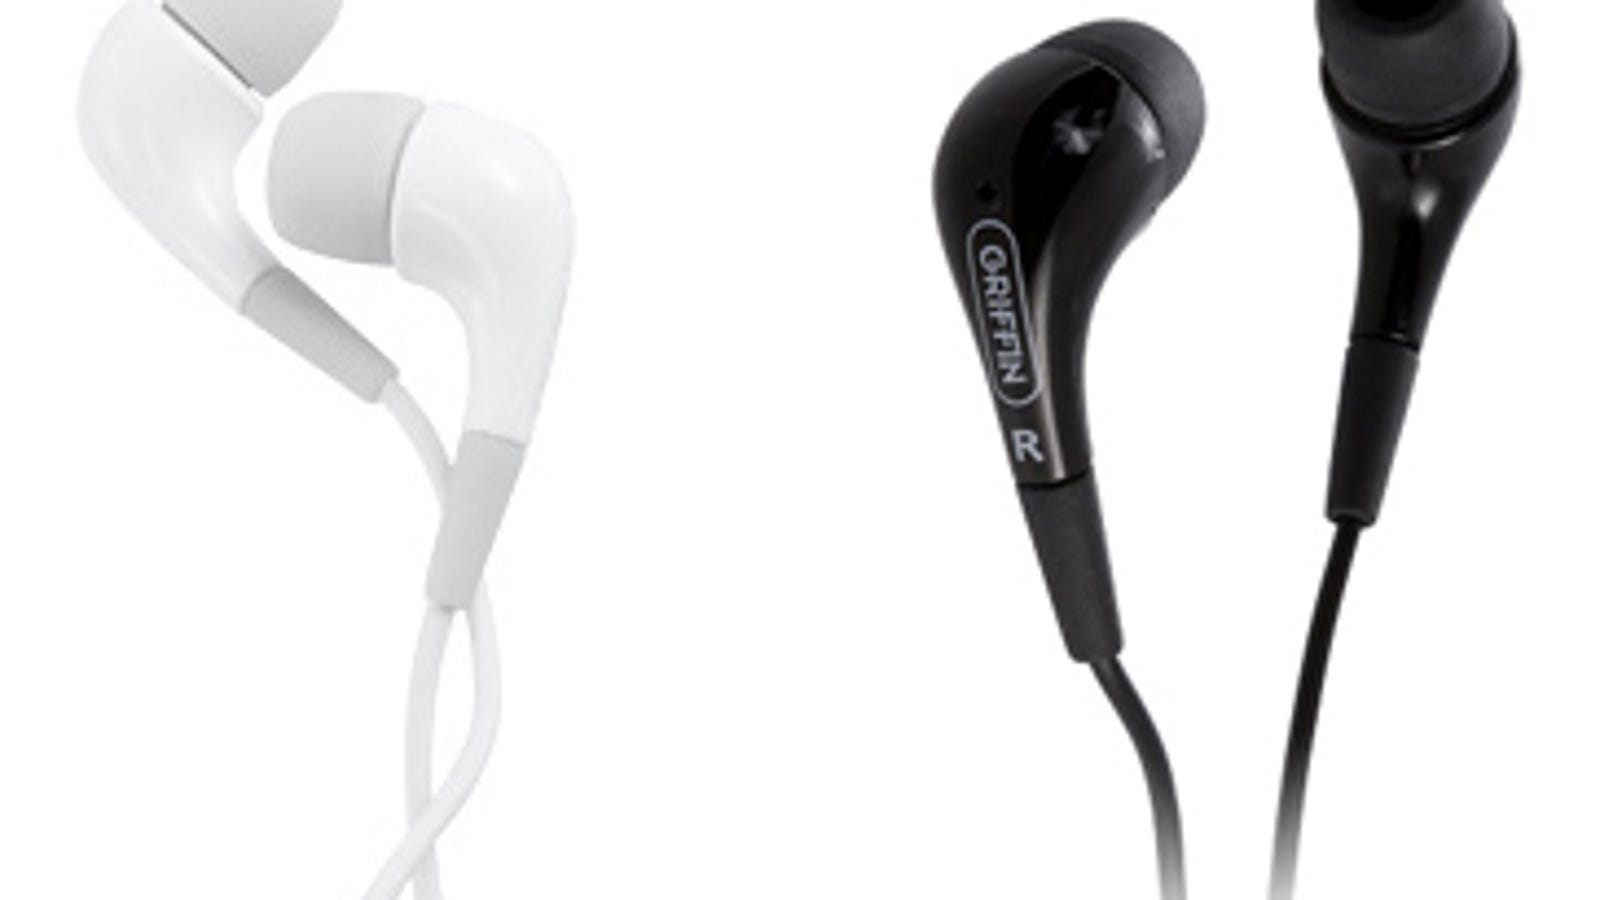 oppo headphone dac - Breaking News: Griffin Releases More iPod Accessories